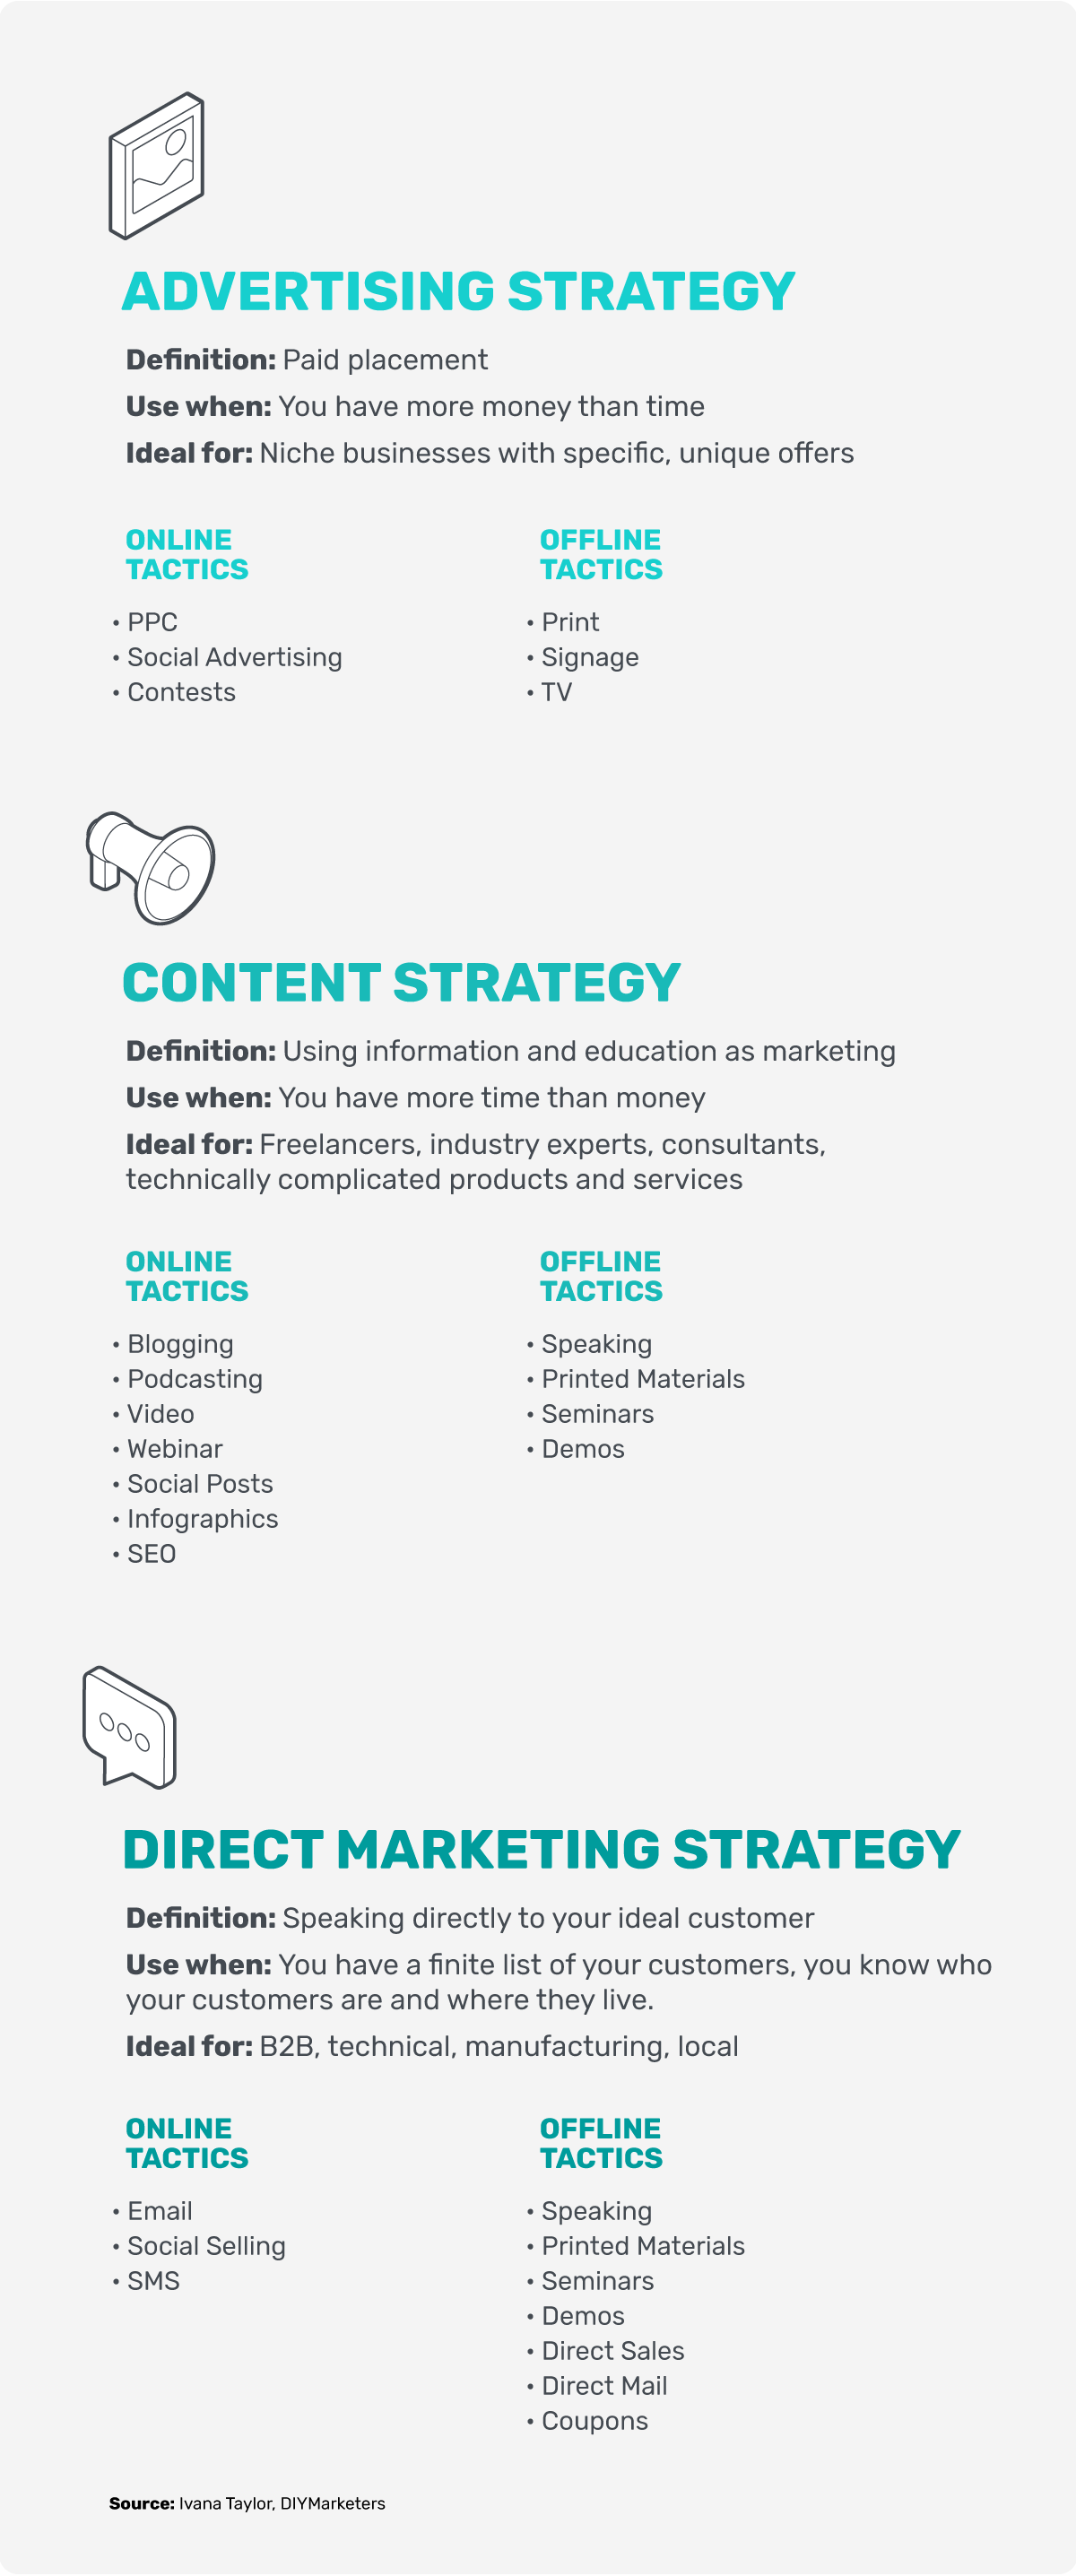 online and offline examples of popular tactics for three marketing strategies